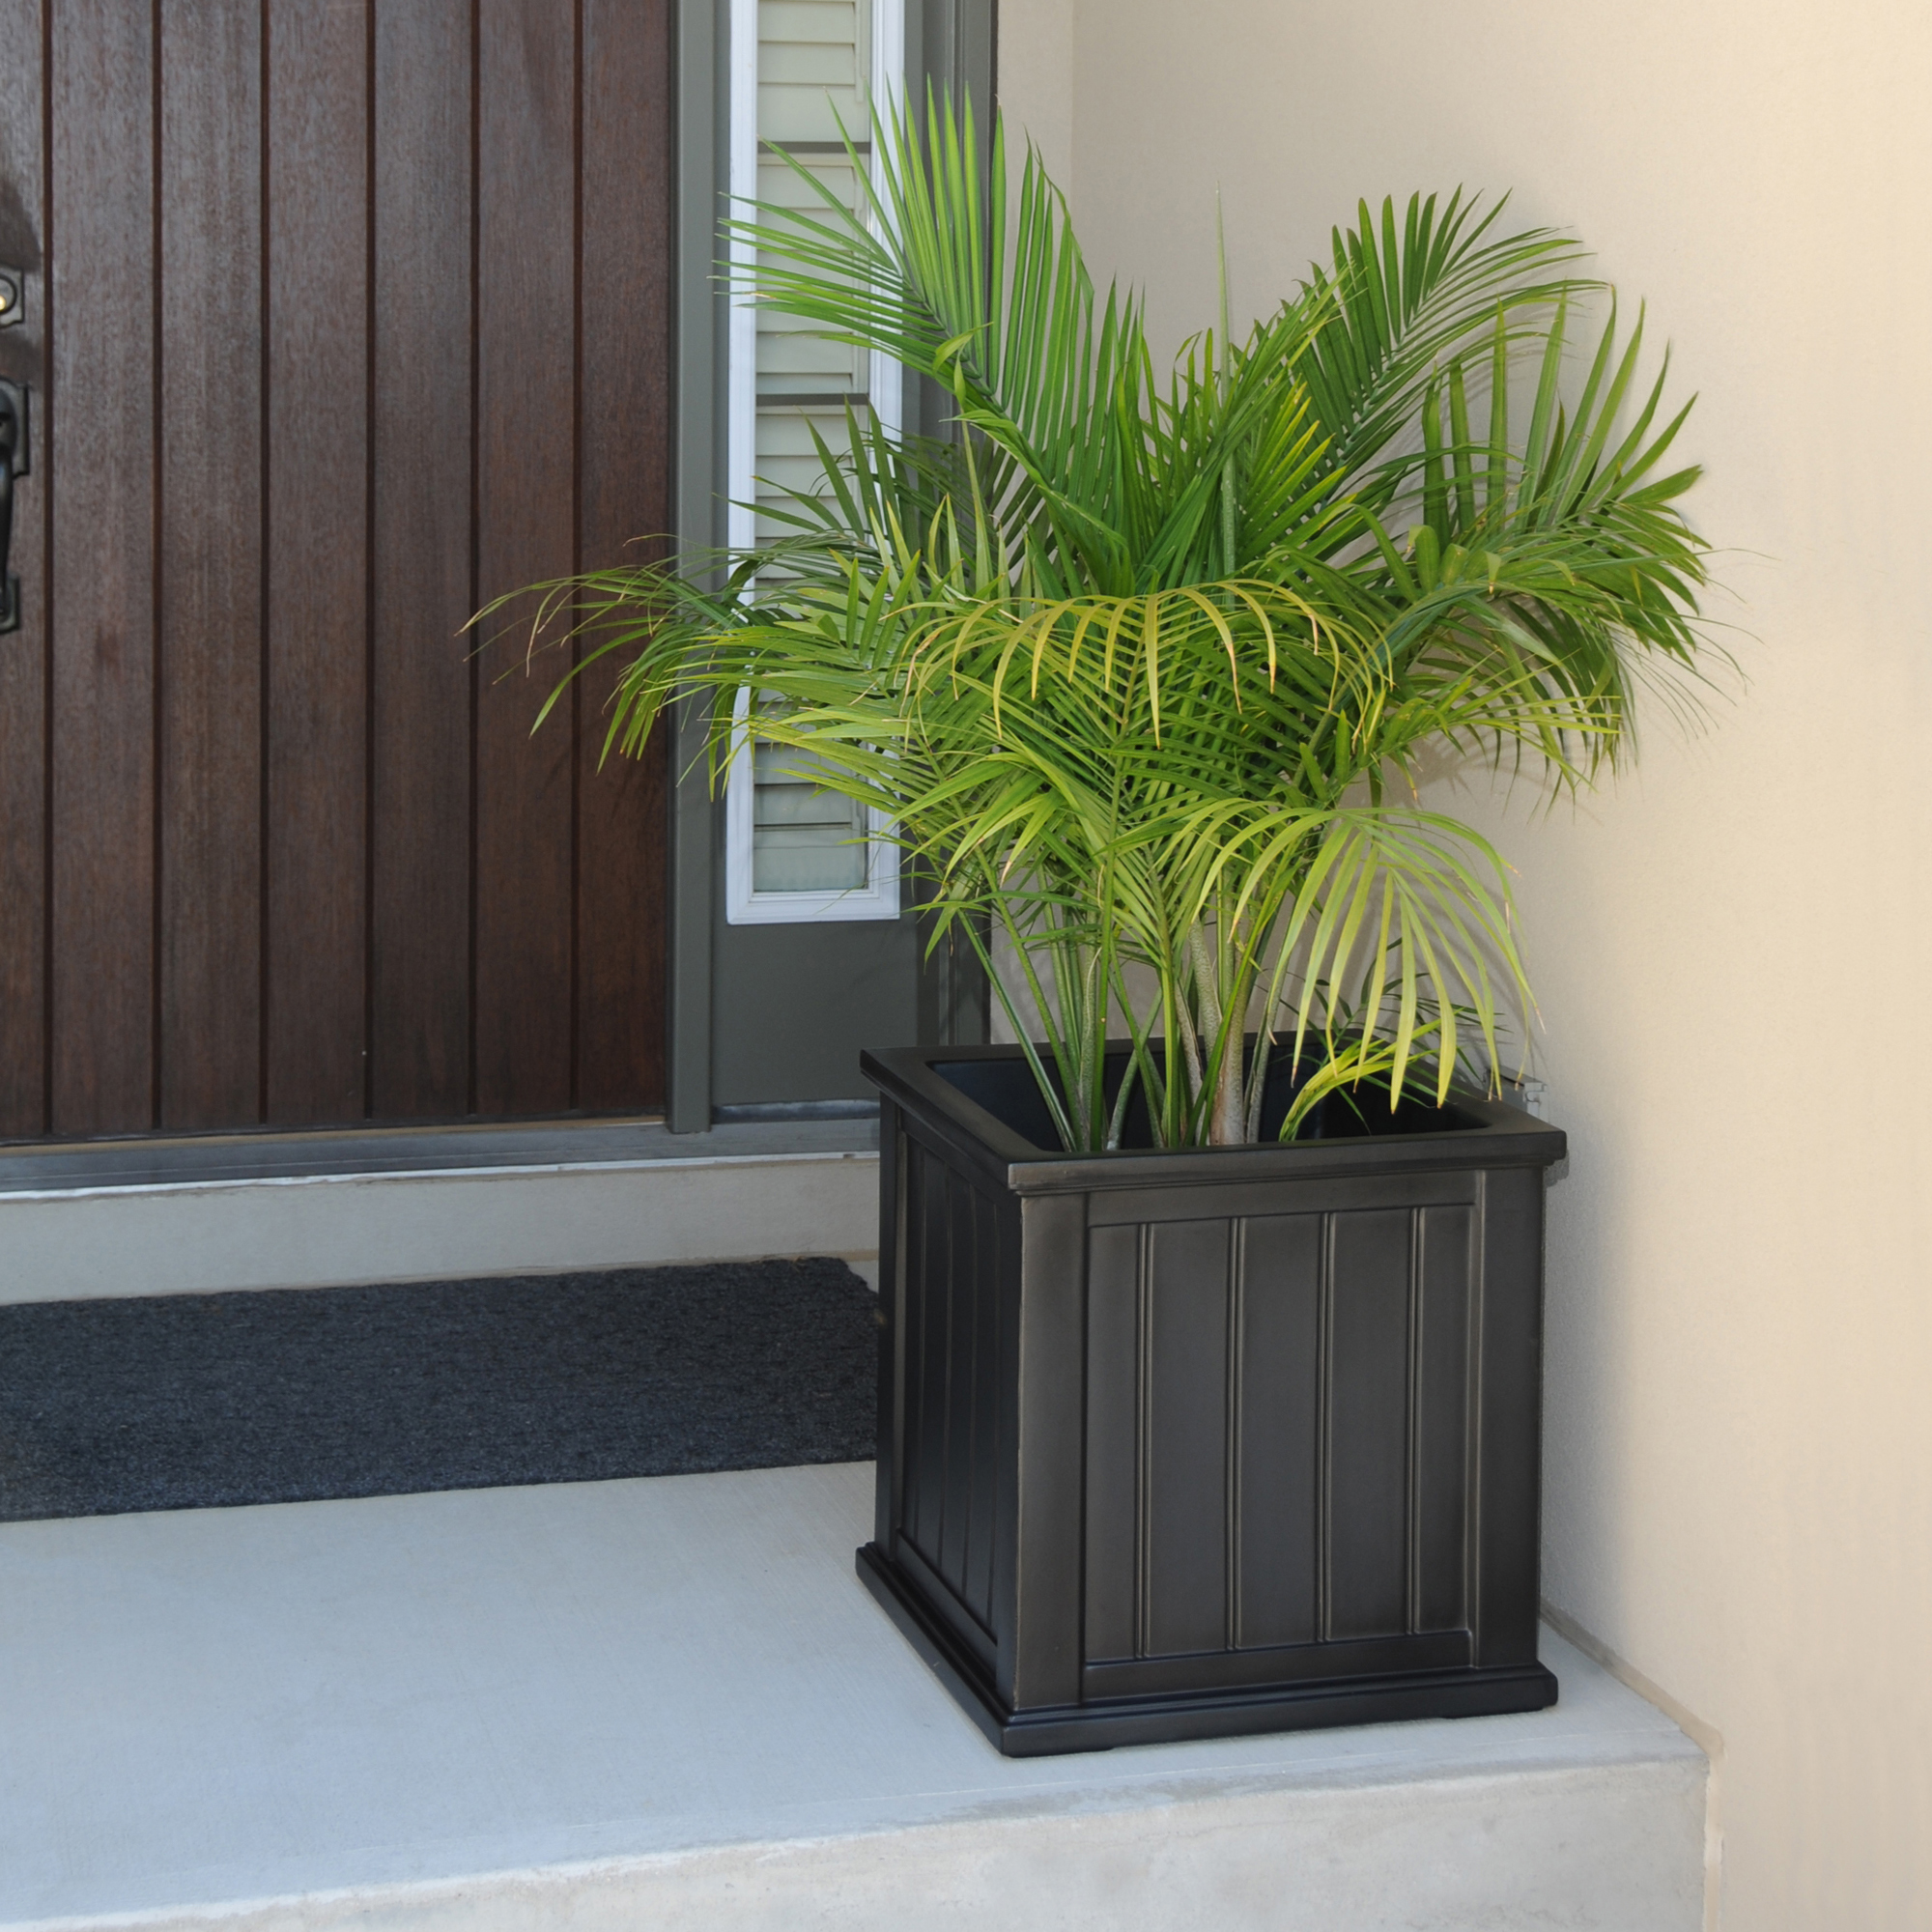 Cape Cod Patio Planter 20x20 Black by Garden Planters